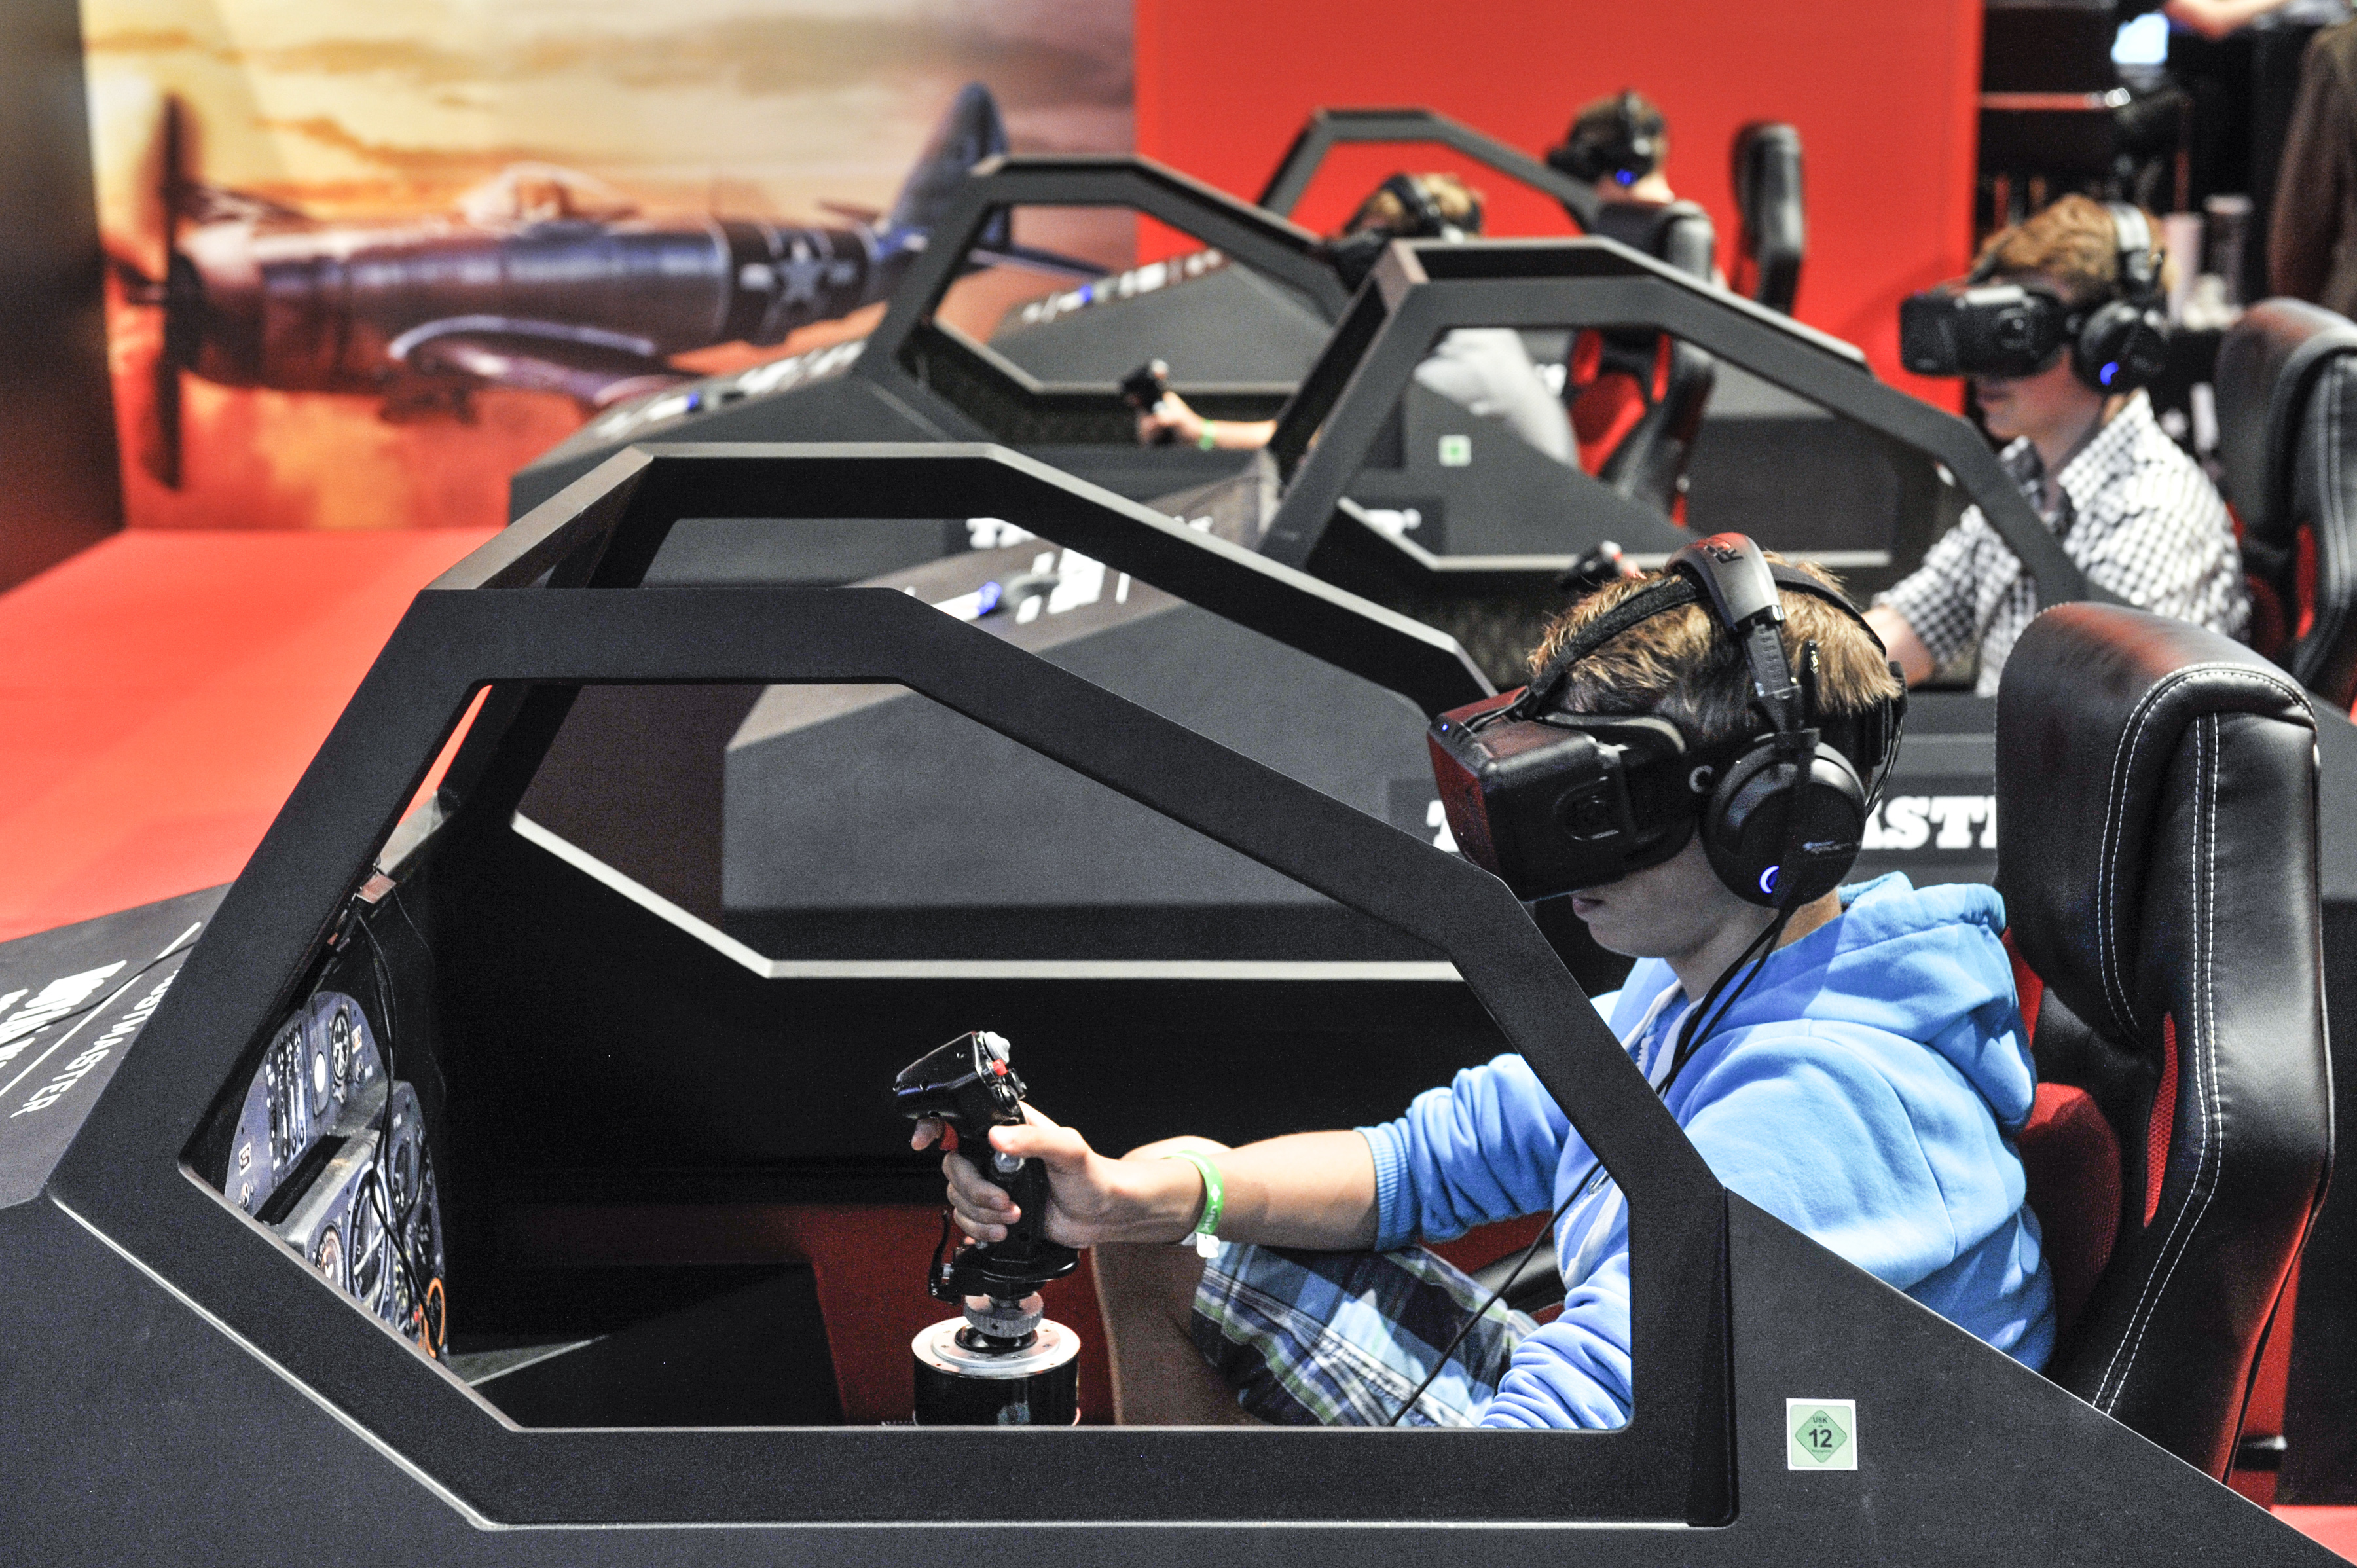 At Gamescom, the world's largest video game convention, players fight in WWII dogfights in War Thunder on Oculus Rift.